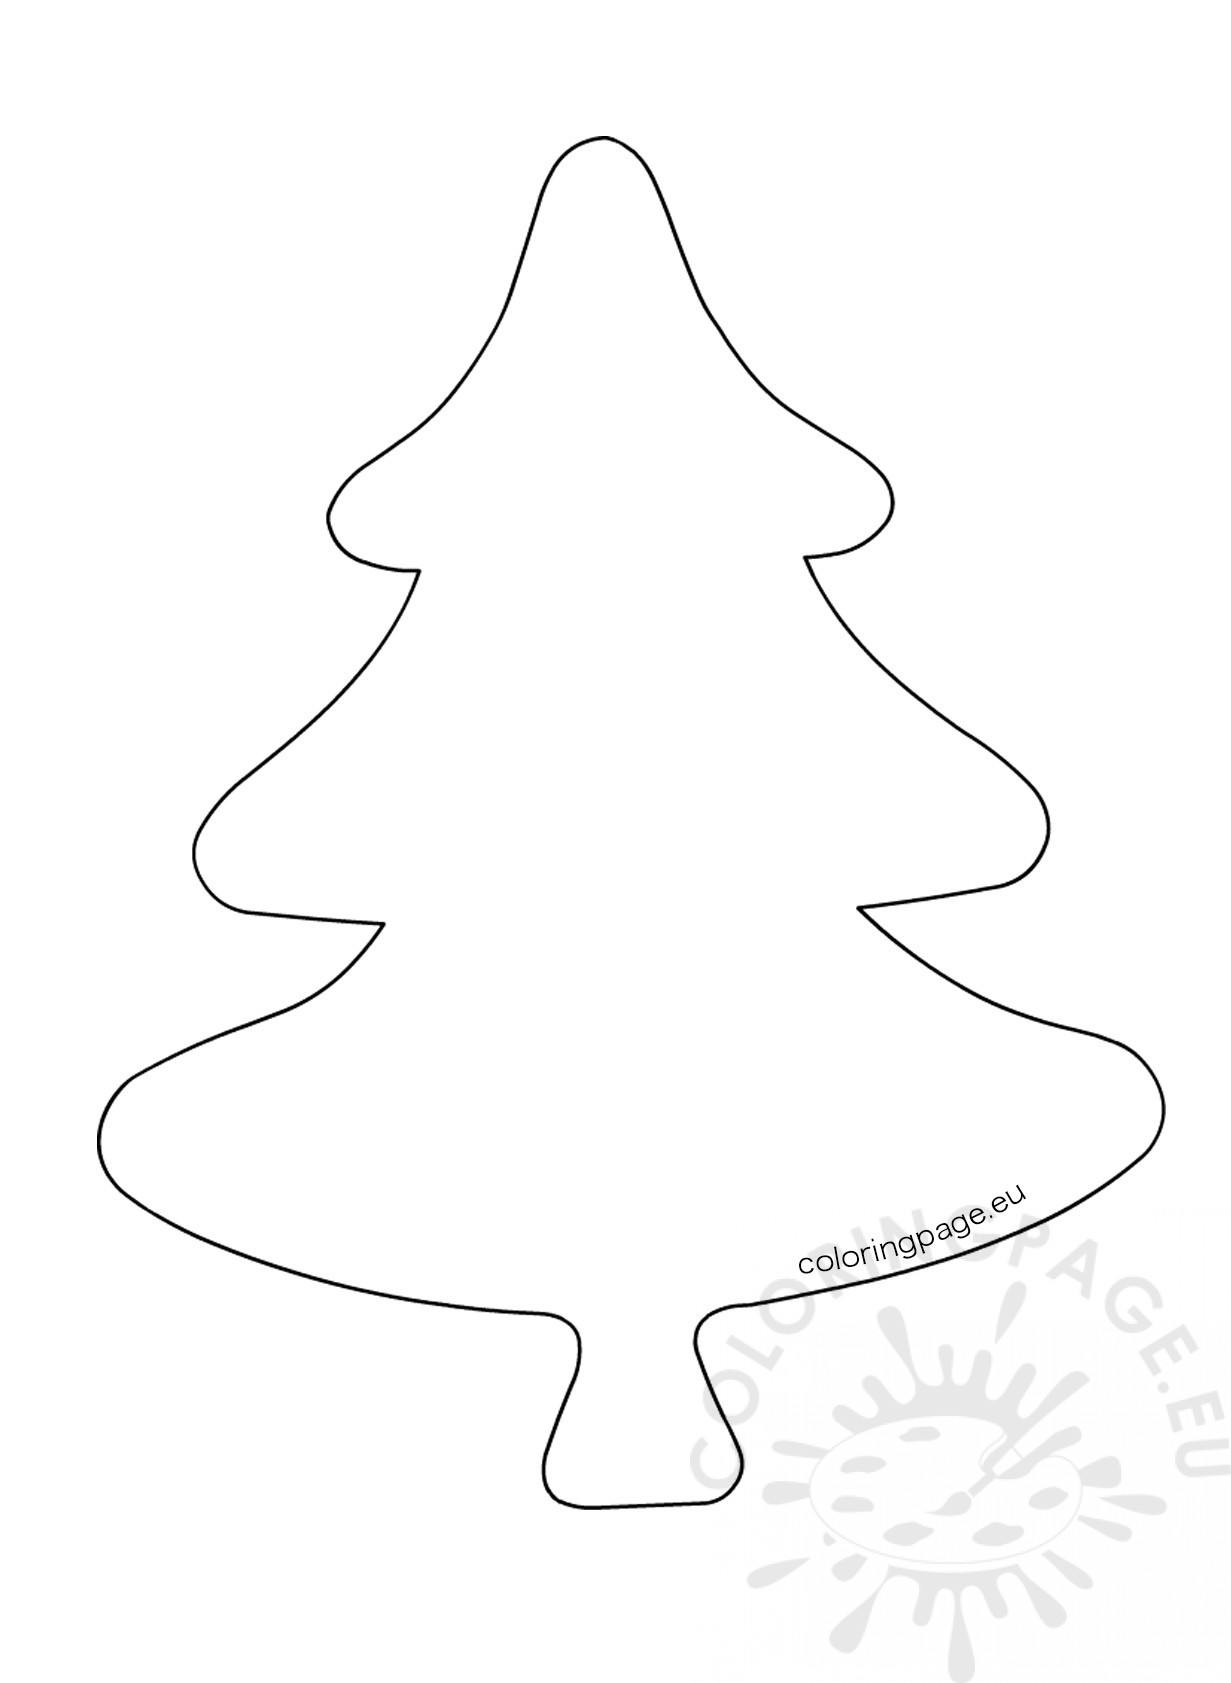 Christmas Tree Drawing Template at GetDrawings.com | Free for ...